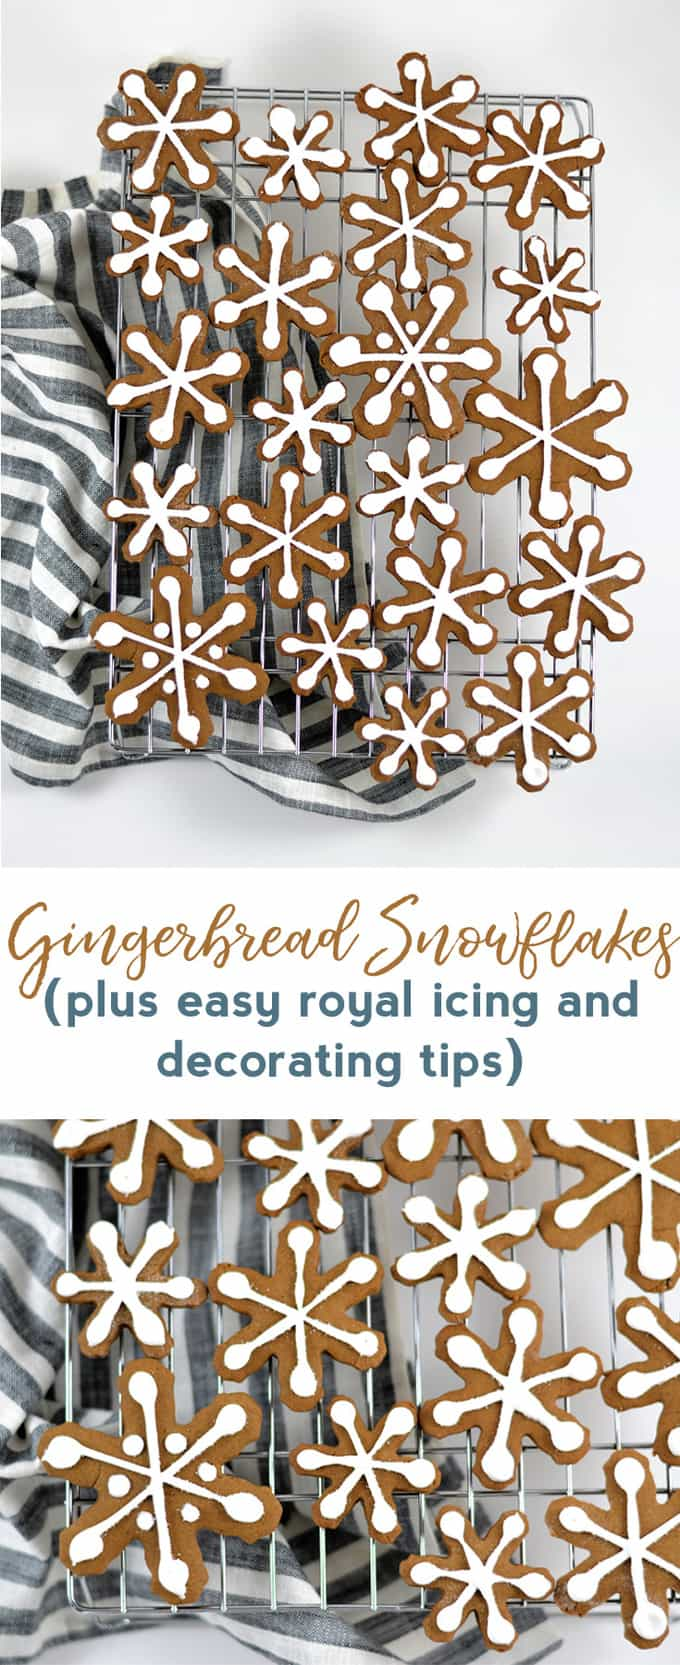 gingerbread snowflakes 6